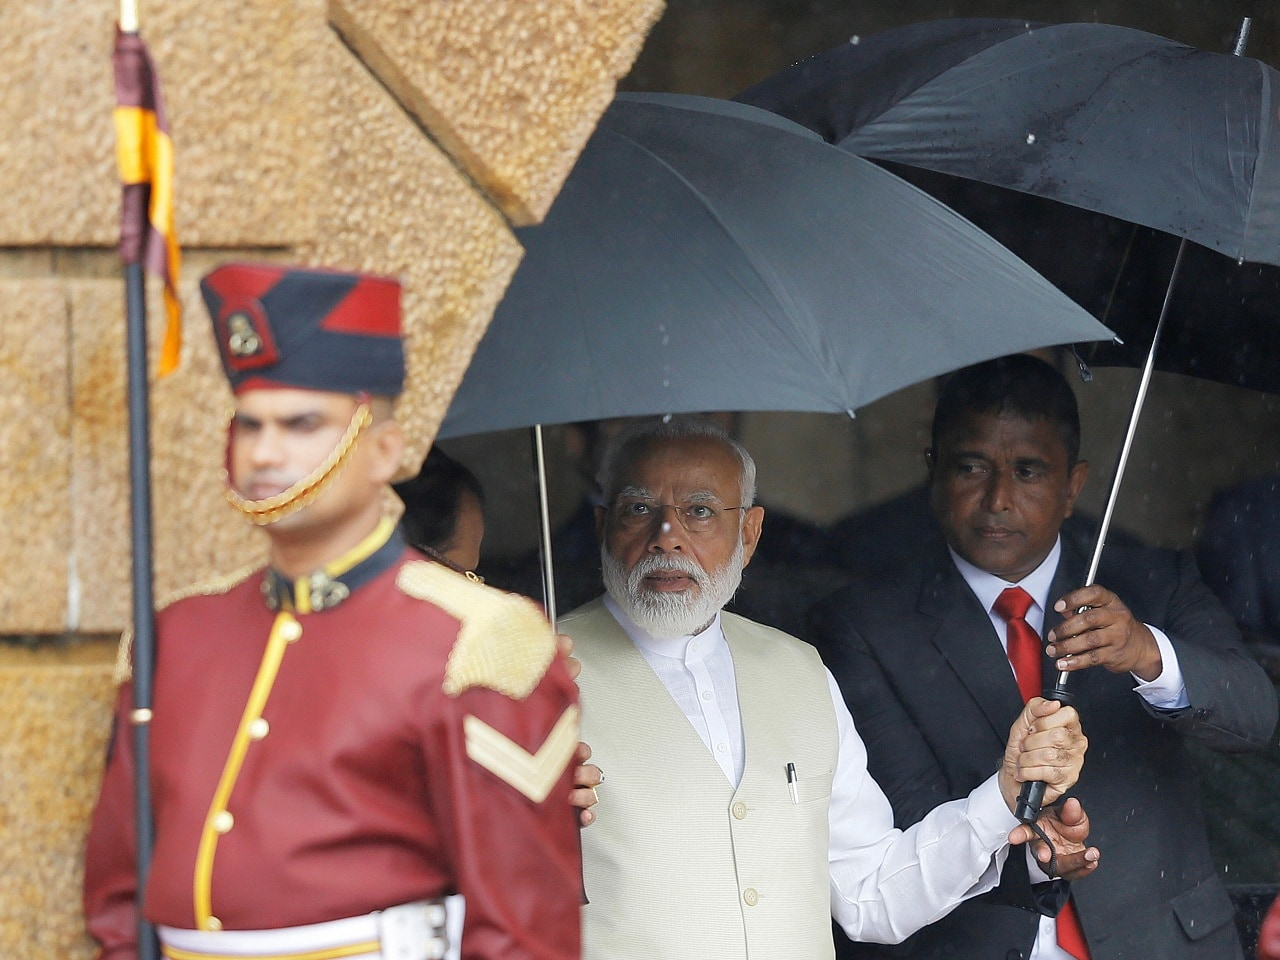 India's Prime Minister Narendra Modi holds an umbrella during his welcome ceremony at the Presidential Secretariat in Colombo, Sri Lanka, June 9, 2019. REUTERS/ Dinuka Liyanawatte